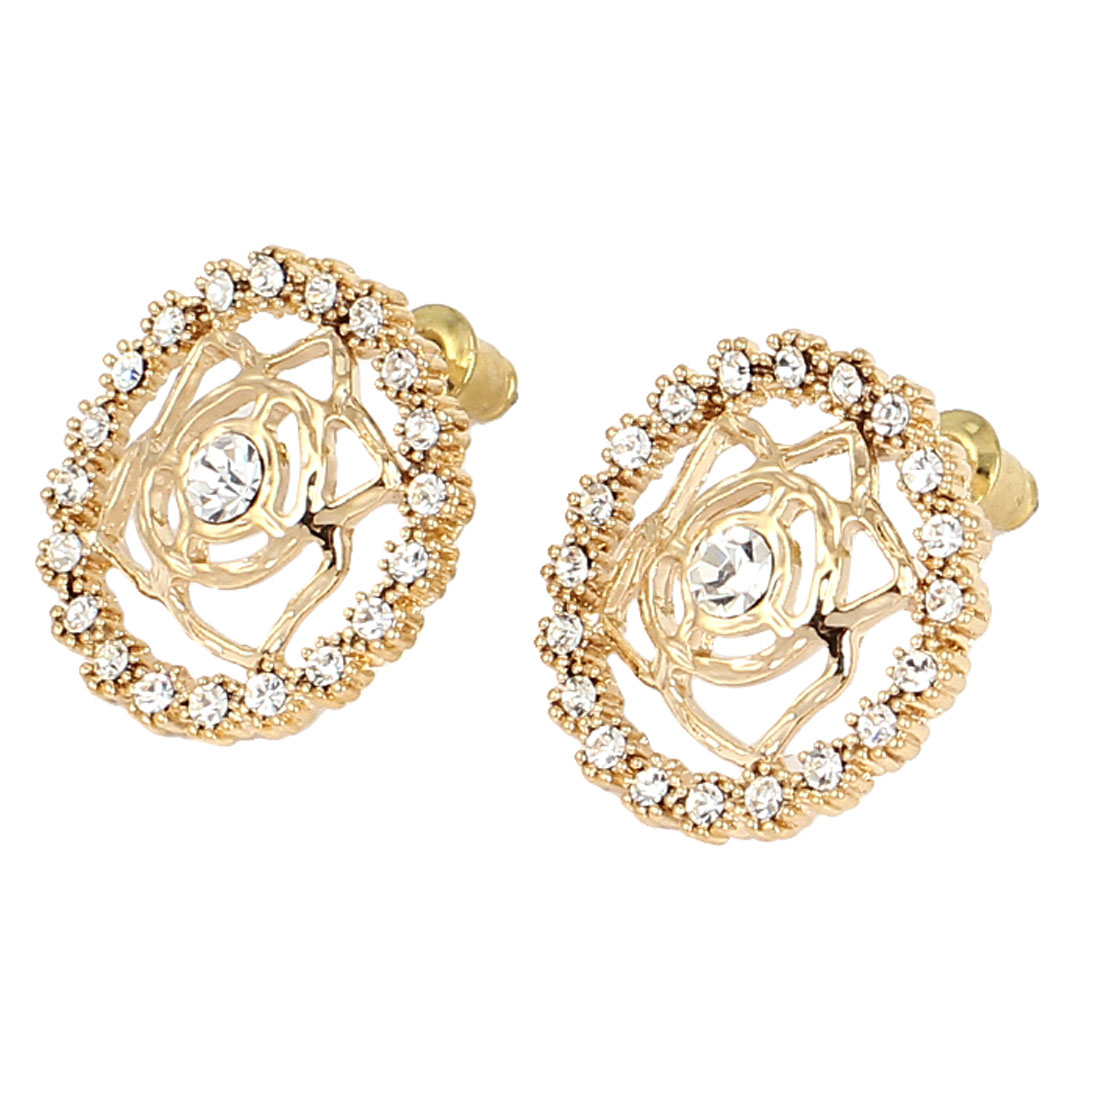 Woman Party Fashion Clear Rhinestone Inlaid Gold Tone Flower Stud Earrings Ear Pins Nails Jewelry Pair